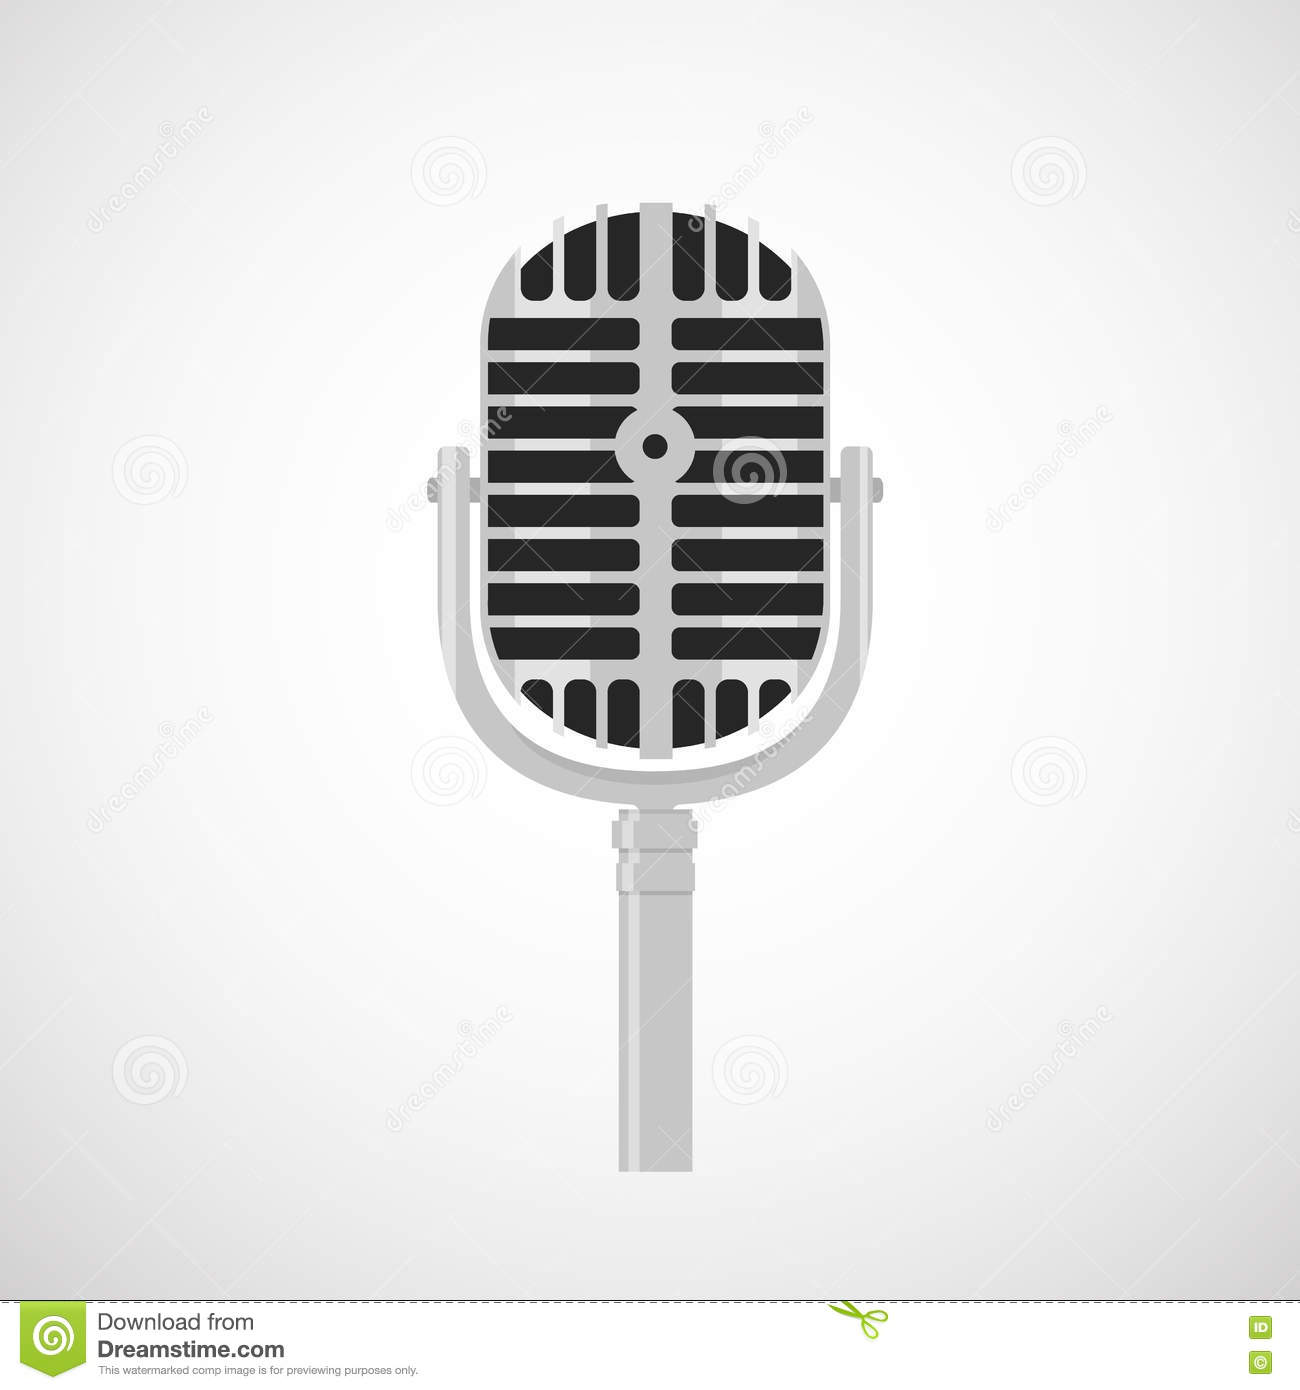 Flat Vintage Microphone Icon Stock Vector - Illustration of ...